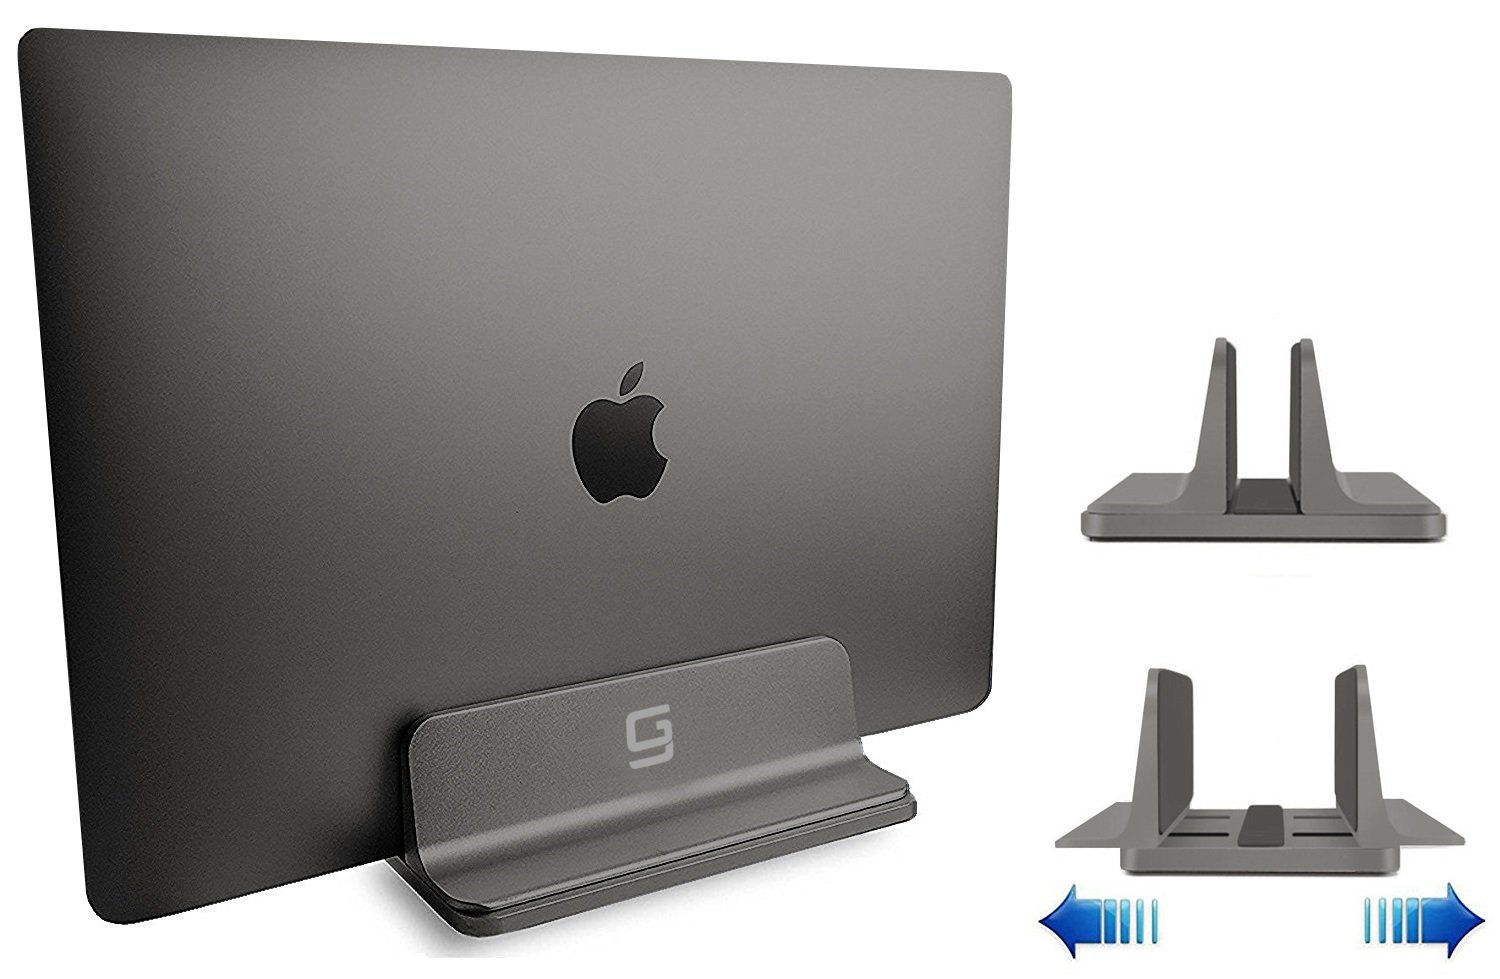 Adjustable Laptop Stand Dock | Fits All Apple MacBook Pro Air HP Dell Acer Lenovo Microsoft Surface Samsung Sony ASUS Laptops iPad | Vertical Modern Aluminum Custom Fit Desktop Space-Saving (Gray)